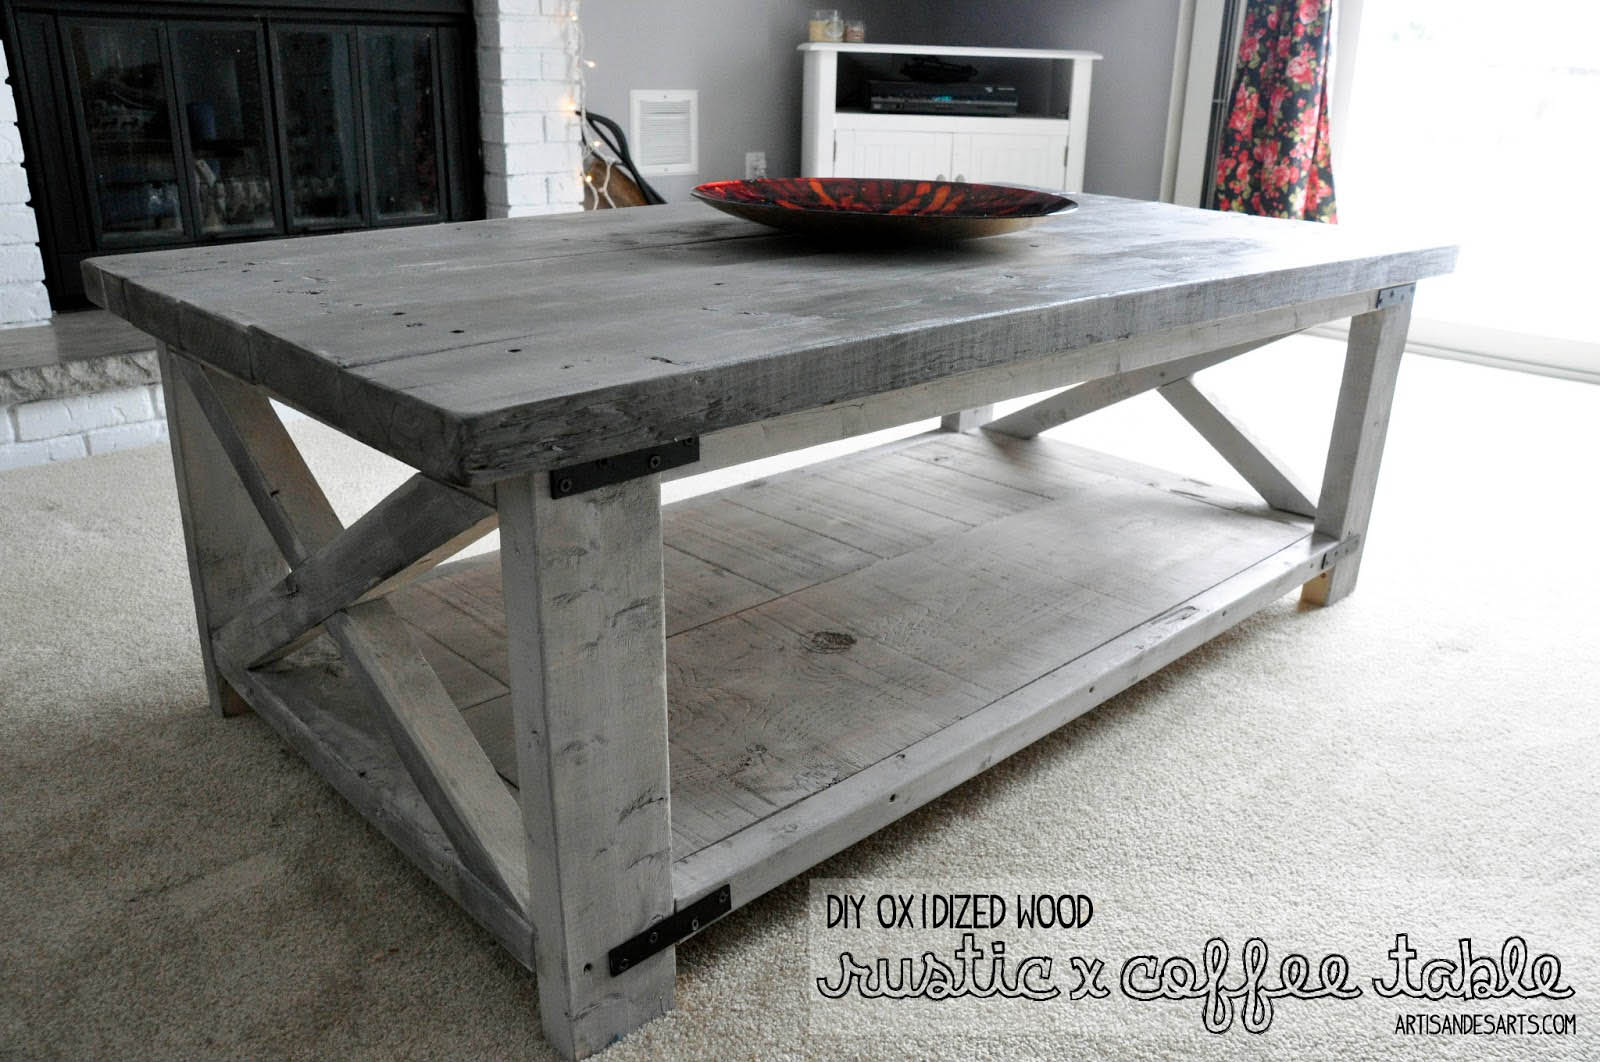 Artisan des arts diy oxidized wood coffee table